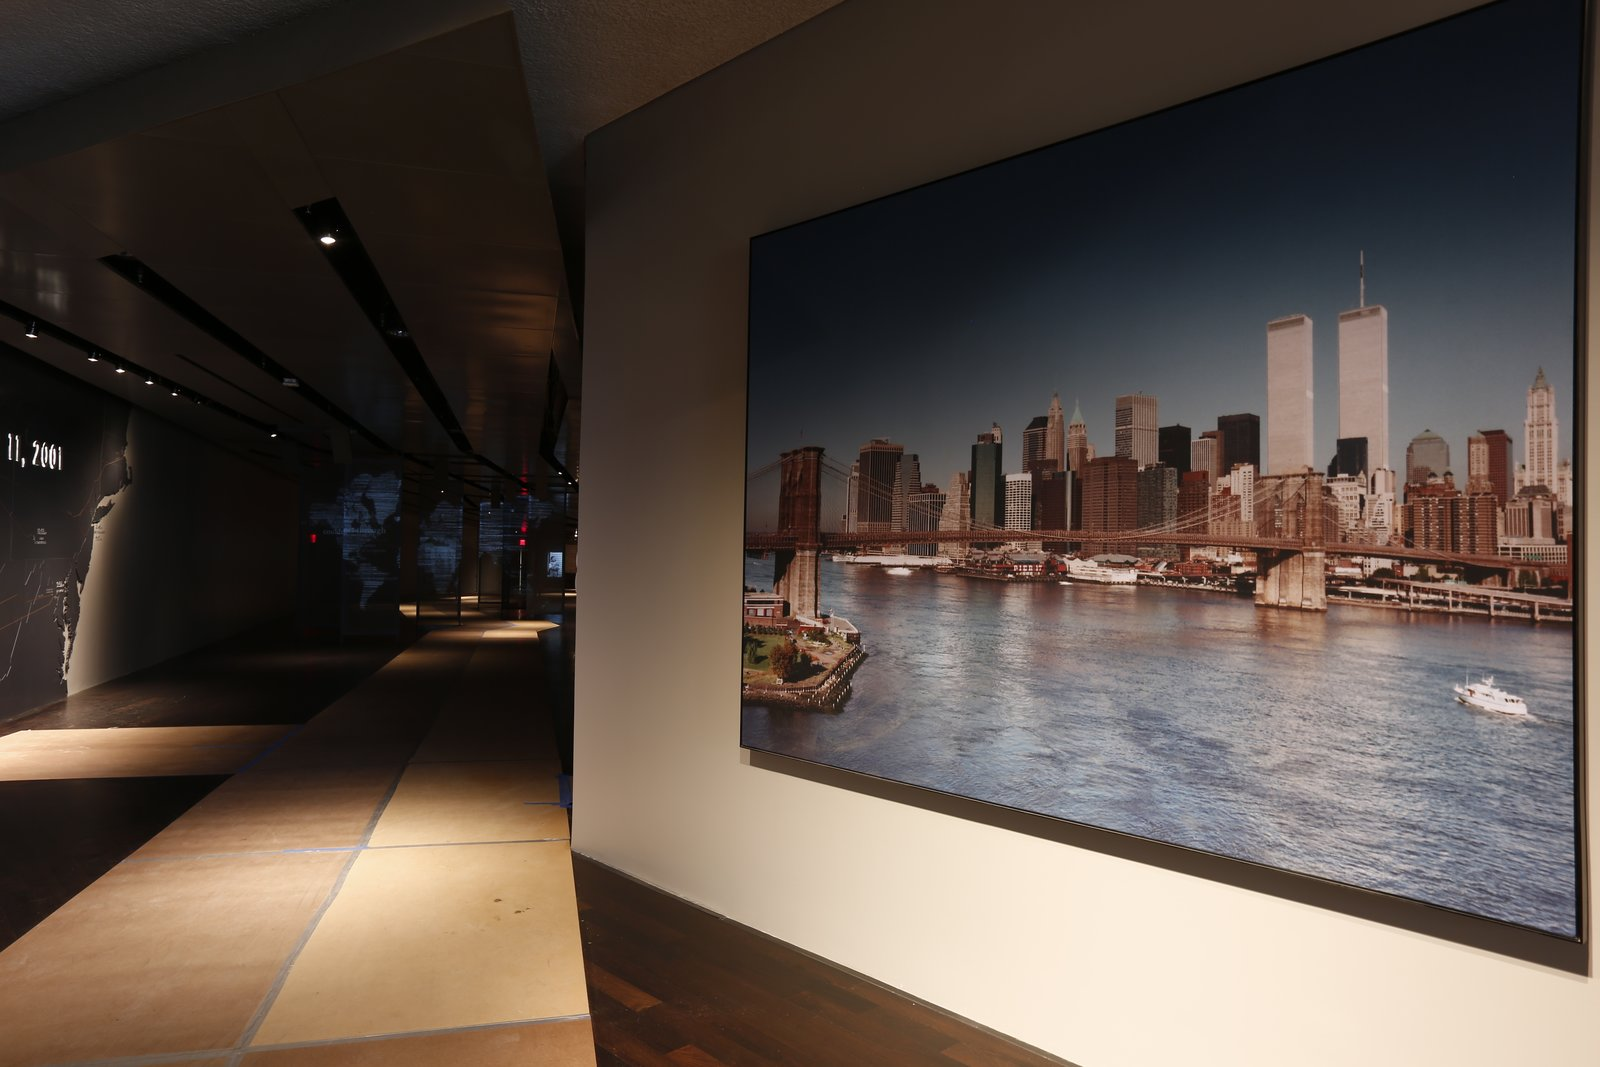 """Visitors will pass this photograph of the World Trade Center, taken at 8:30 a.m. on September 11, 2001, as they begin to follow the """"ribbon"""" from the concourse level down to the exhibits at bedrock level. Photo by Jin Lee.  Photo 5 of 14 in At Ground Zero Bedrock, the 9/11 Museum Prepares for Visitors"""